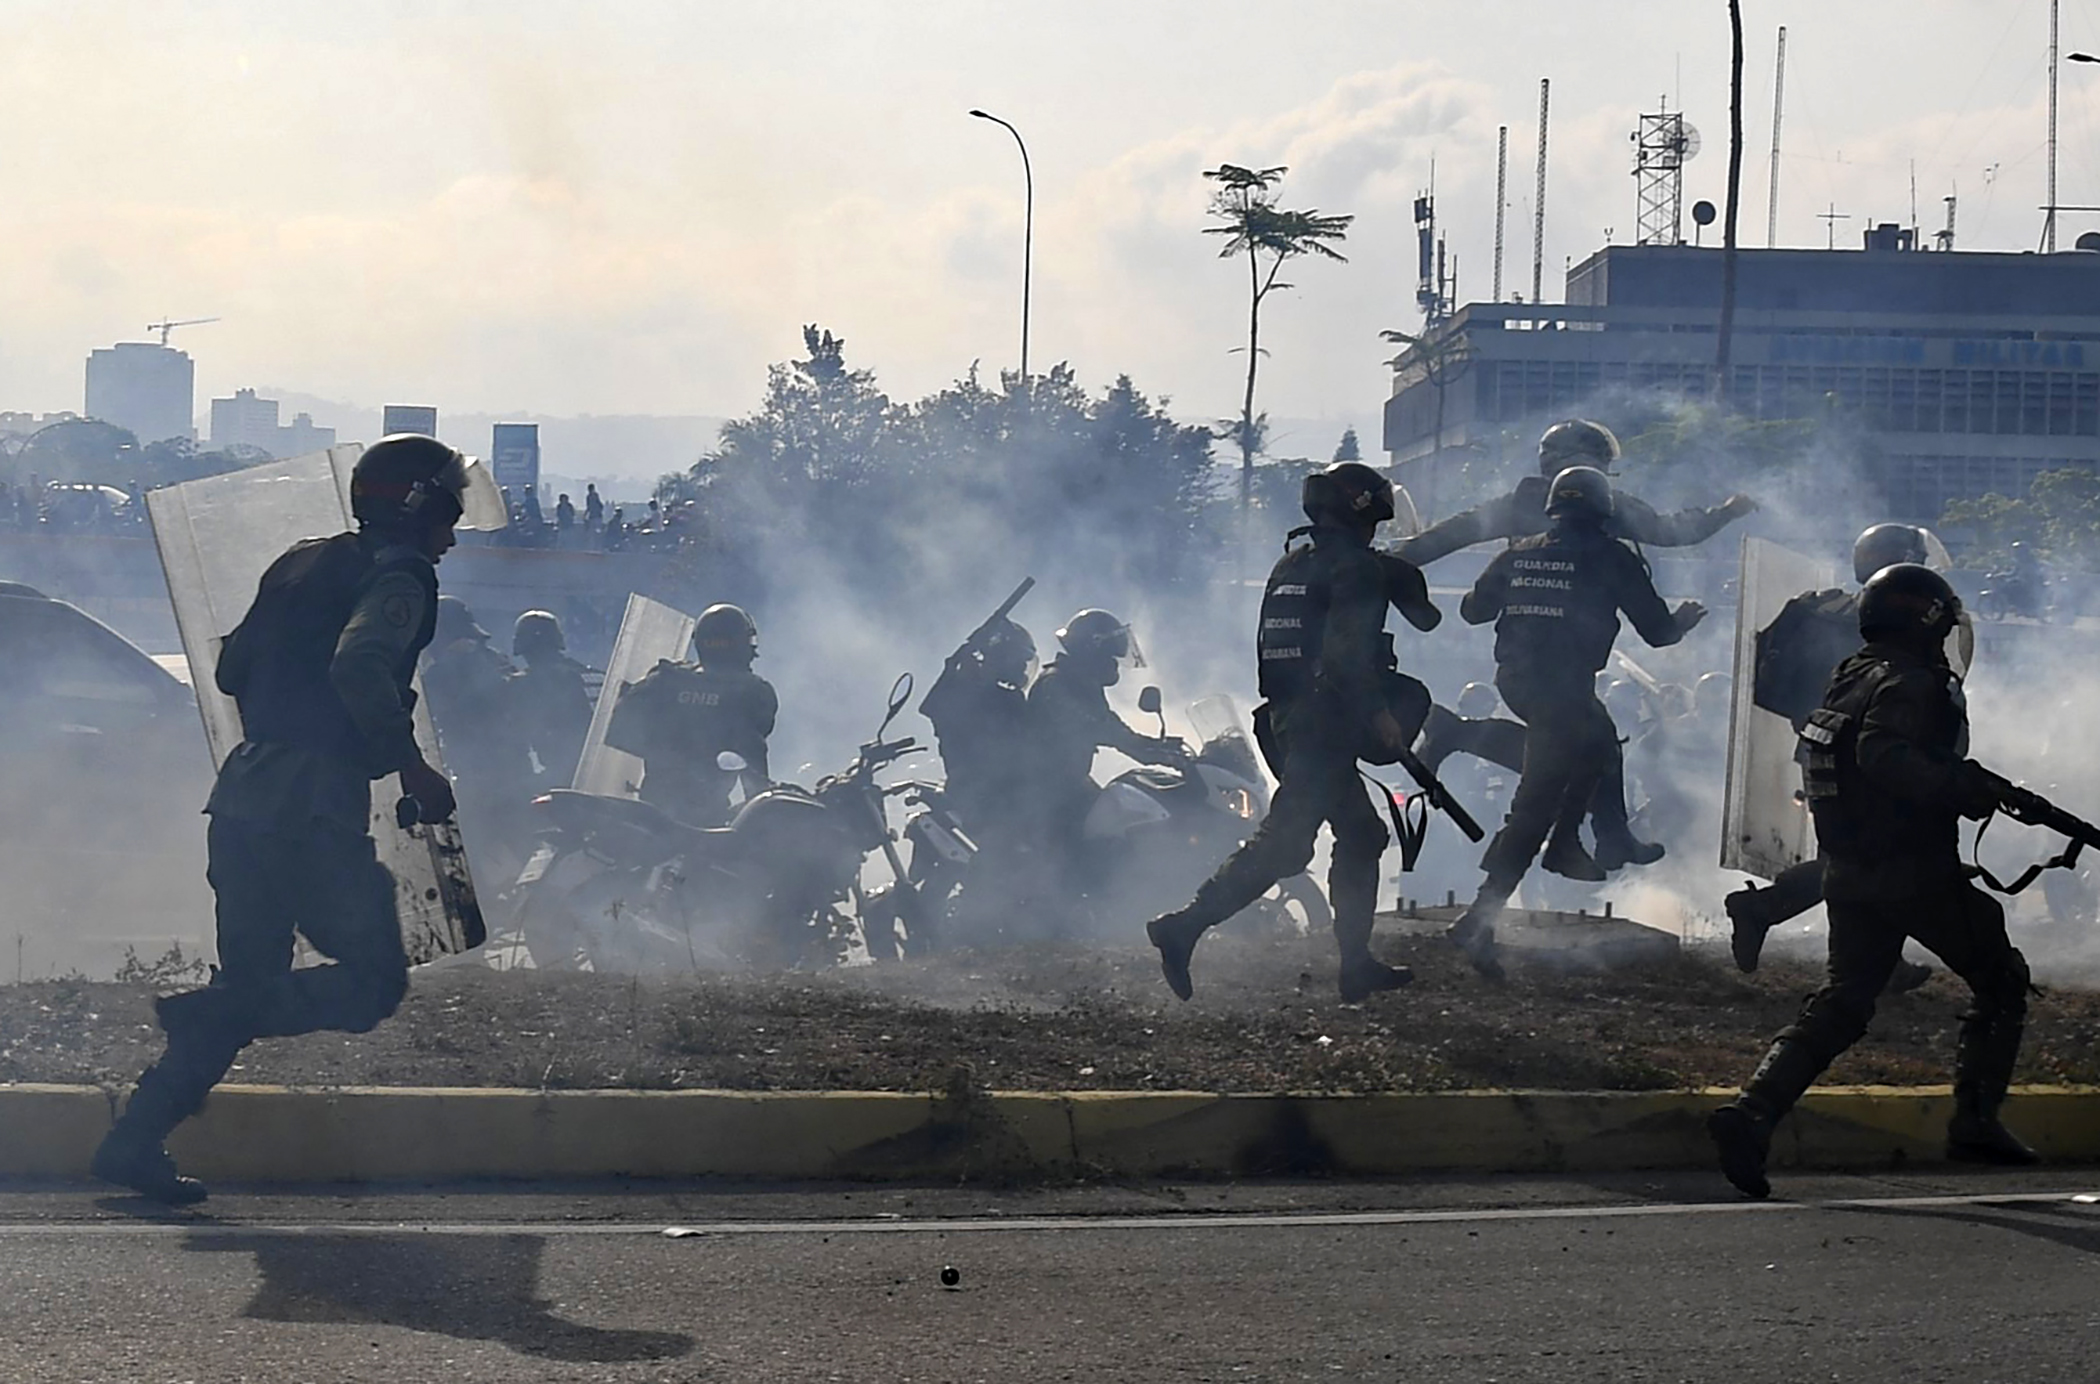 Members of the Bolivarian National Guard loyal to Venezuelan President Nicolas Maduro run under a cloud of tear gas after being repelled with rifle fire by guards supporting Venezuelan opposition leader and self-proclaimed acting president Juan Guaido in front of La Carlota military base in Caracas on April 30, 2019. - Guaido said on Tuesday that troops had joined his campaign to oust President Nicolas Maduro as the government vowed to put down what it called an attempted coup. (Photo by Yuri CORTEZ / AFP) (Photo credit should read YURI CORTEZ/AFP/Getty Images)